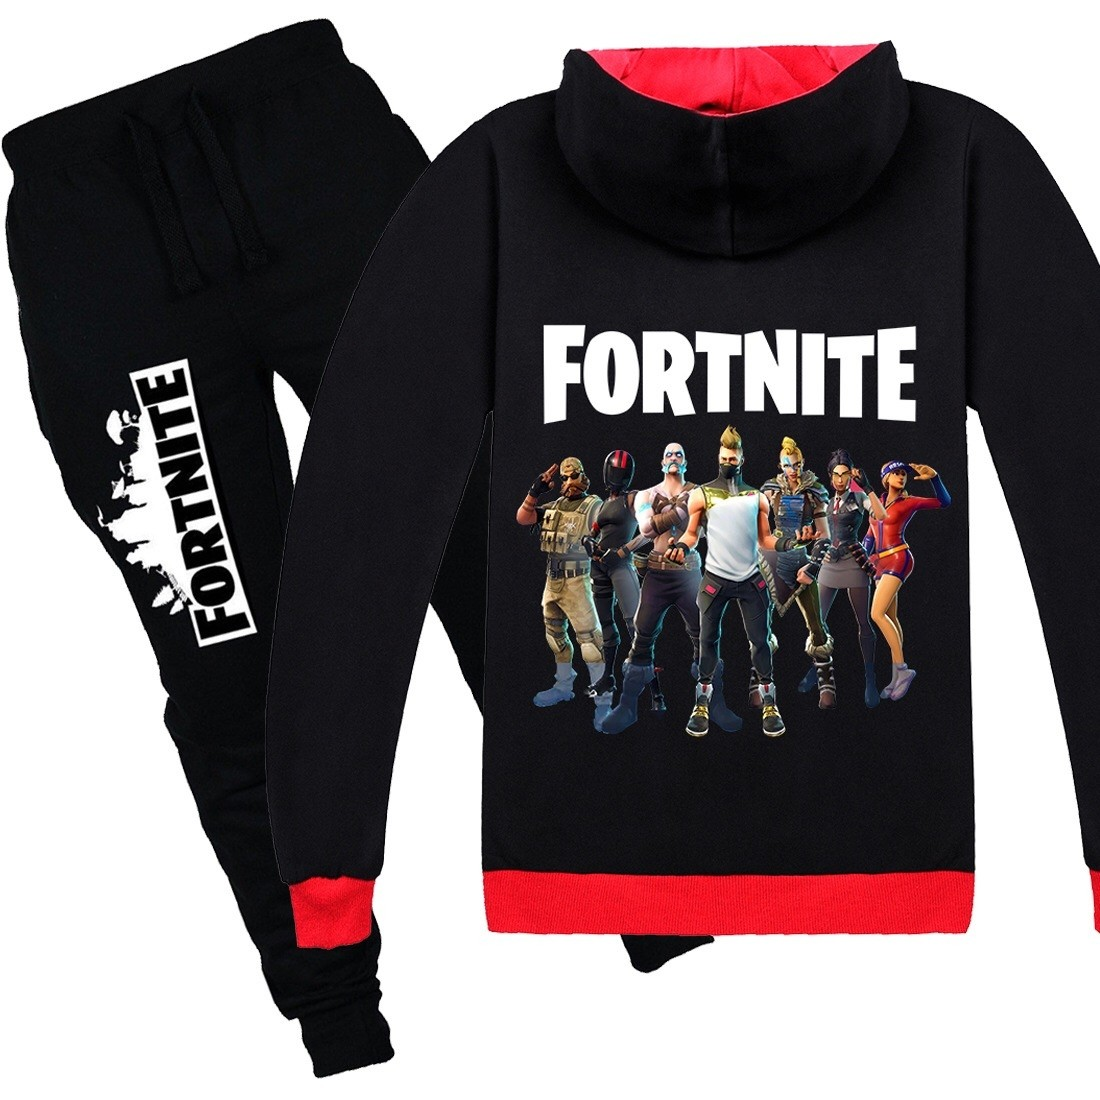 Fortnite Kids Cotton Zip Hoodies Boys Girls Sweatshirts Clothing Jacket